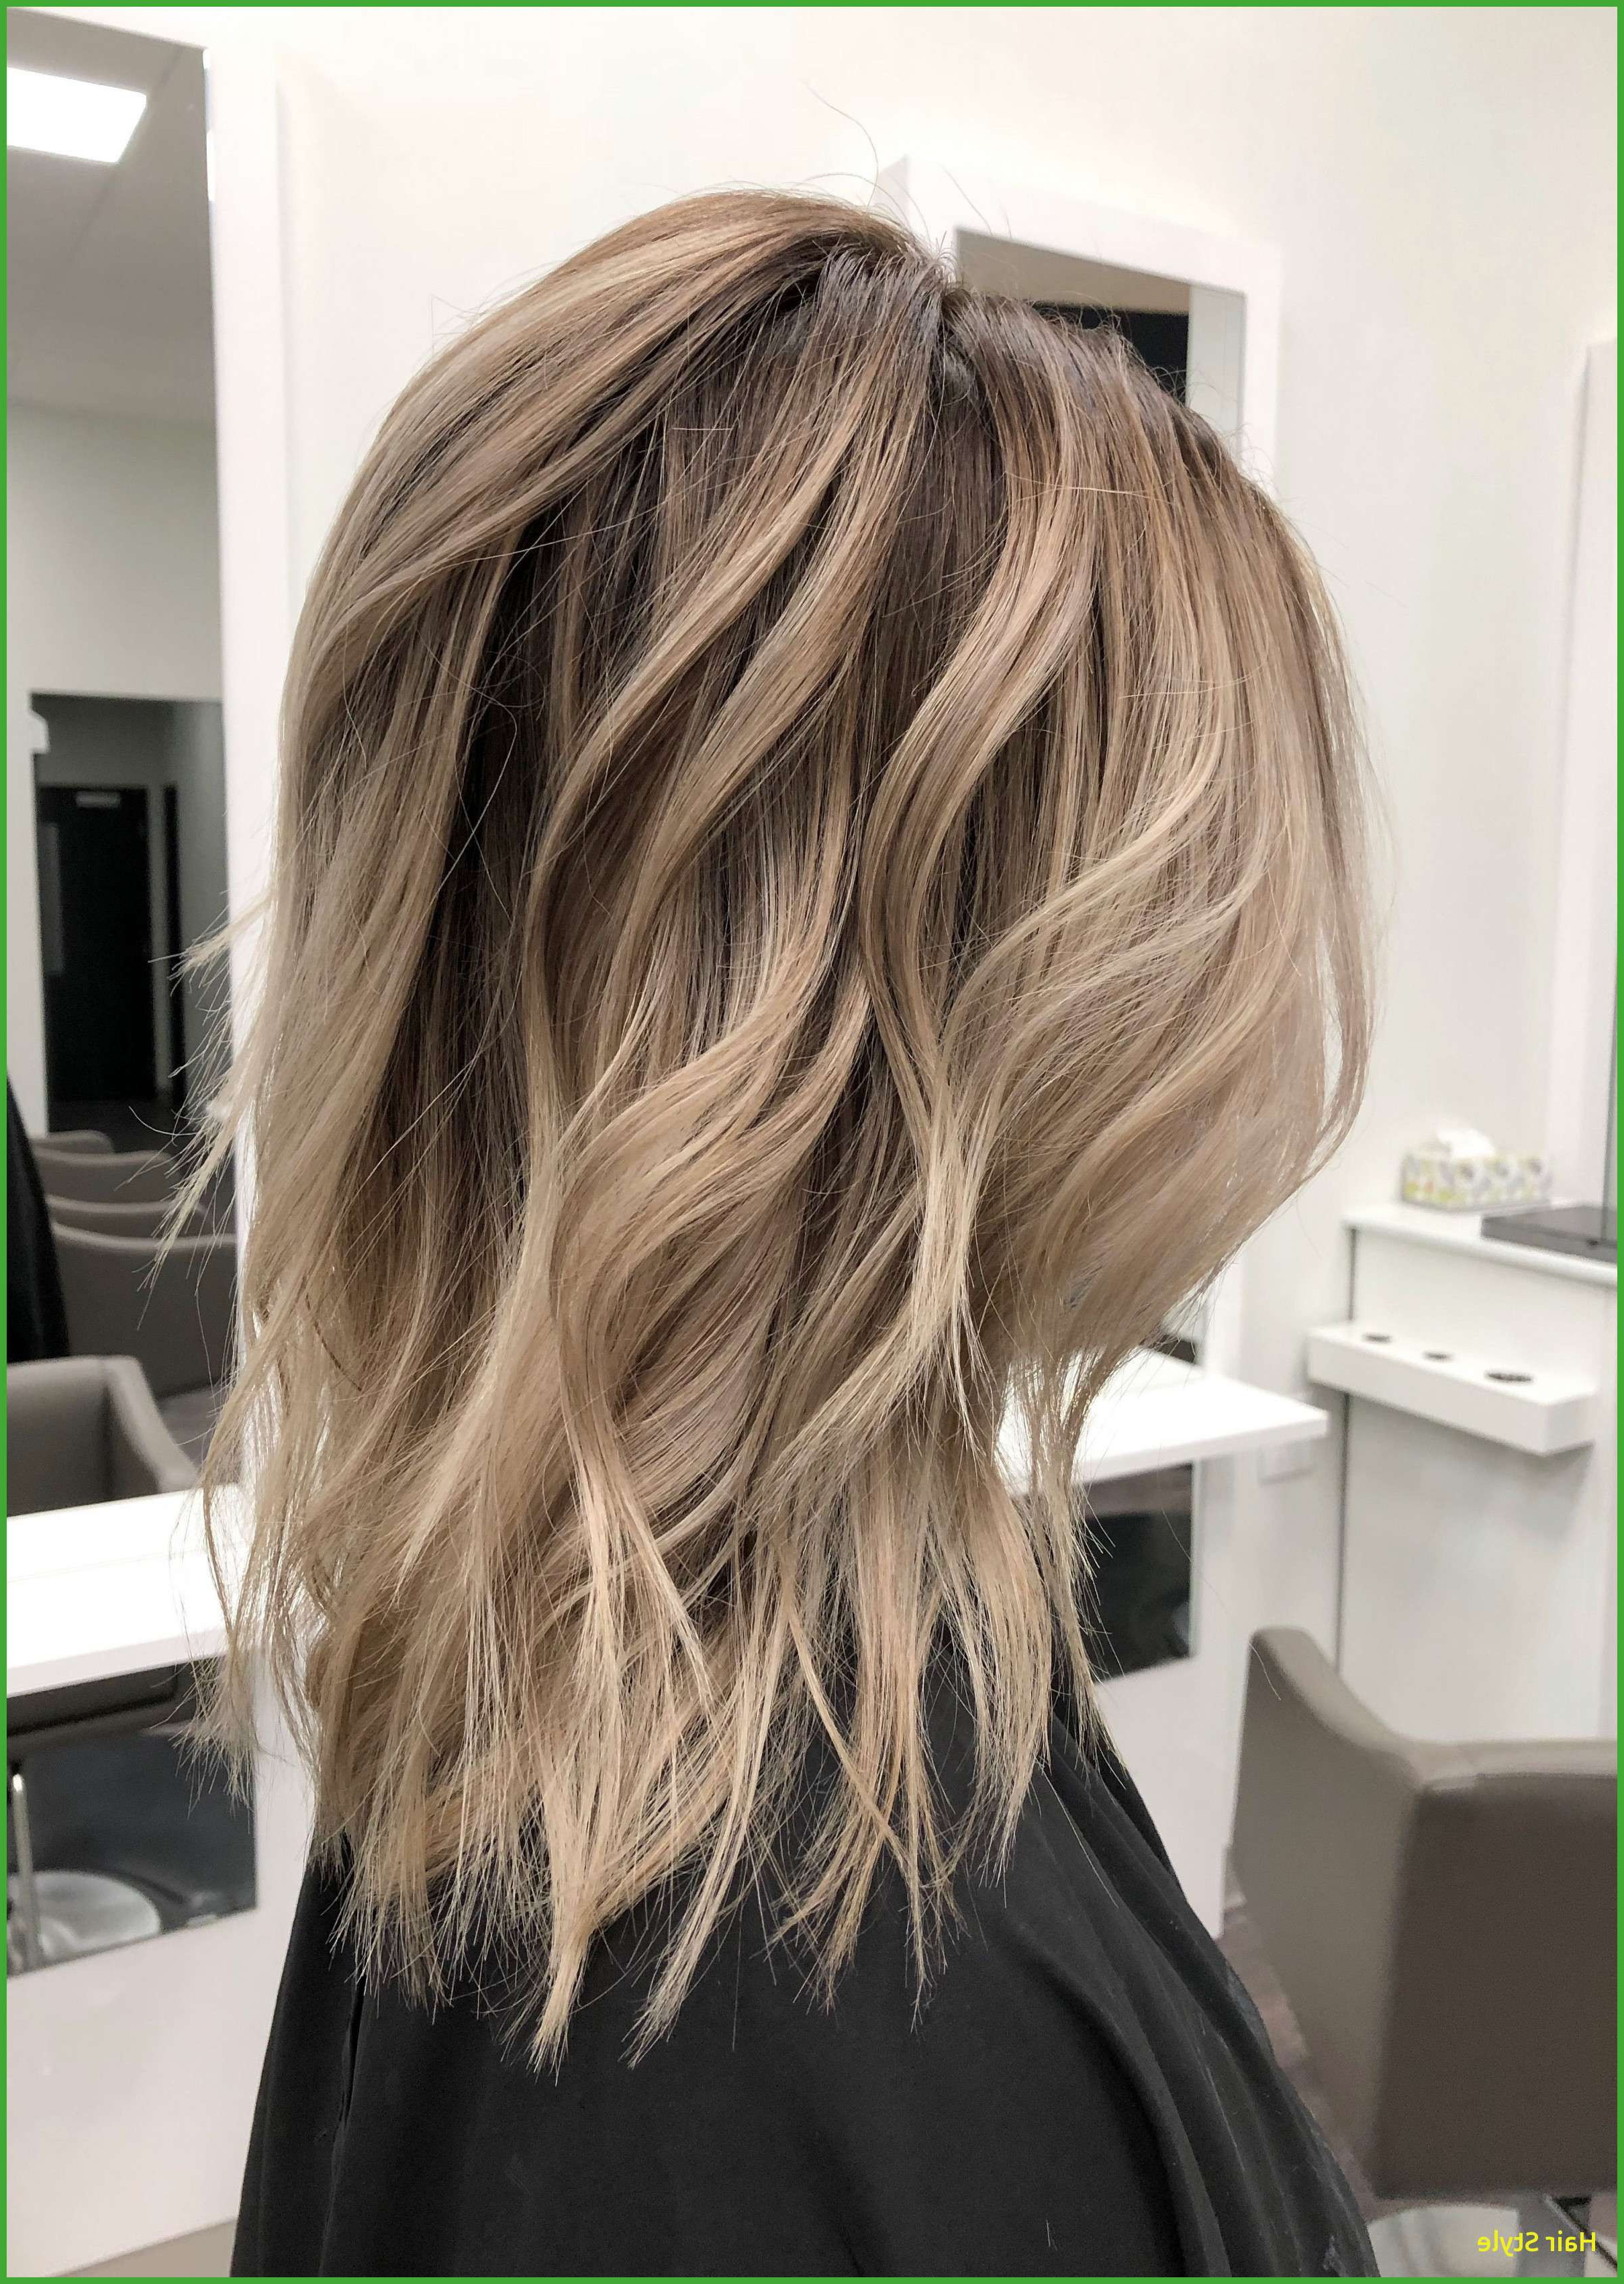 Hairstyles : Choppy Layered Long Haircuts Choppy Layered' Hairstyless Regarding Recent Long Choppy Haircuts With A Sprinkling Of Layers (Gallery 4 of 20)